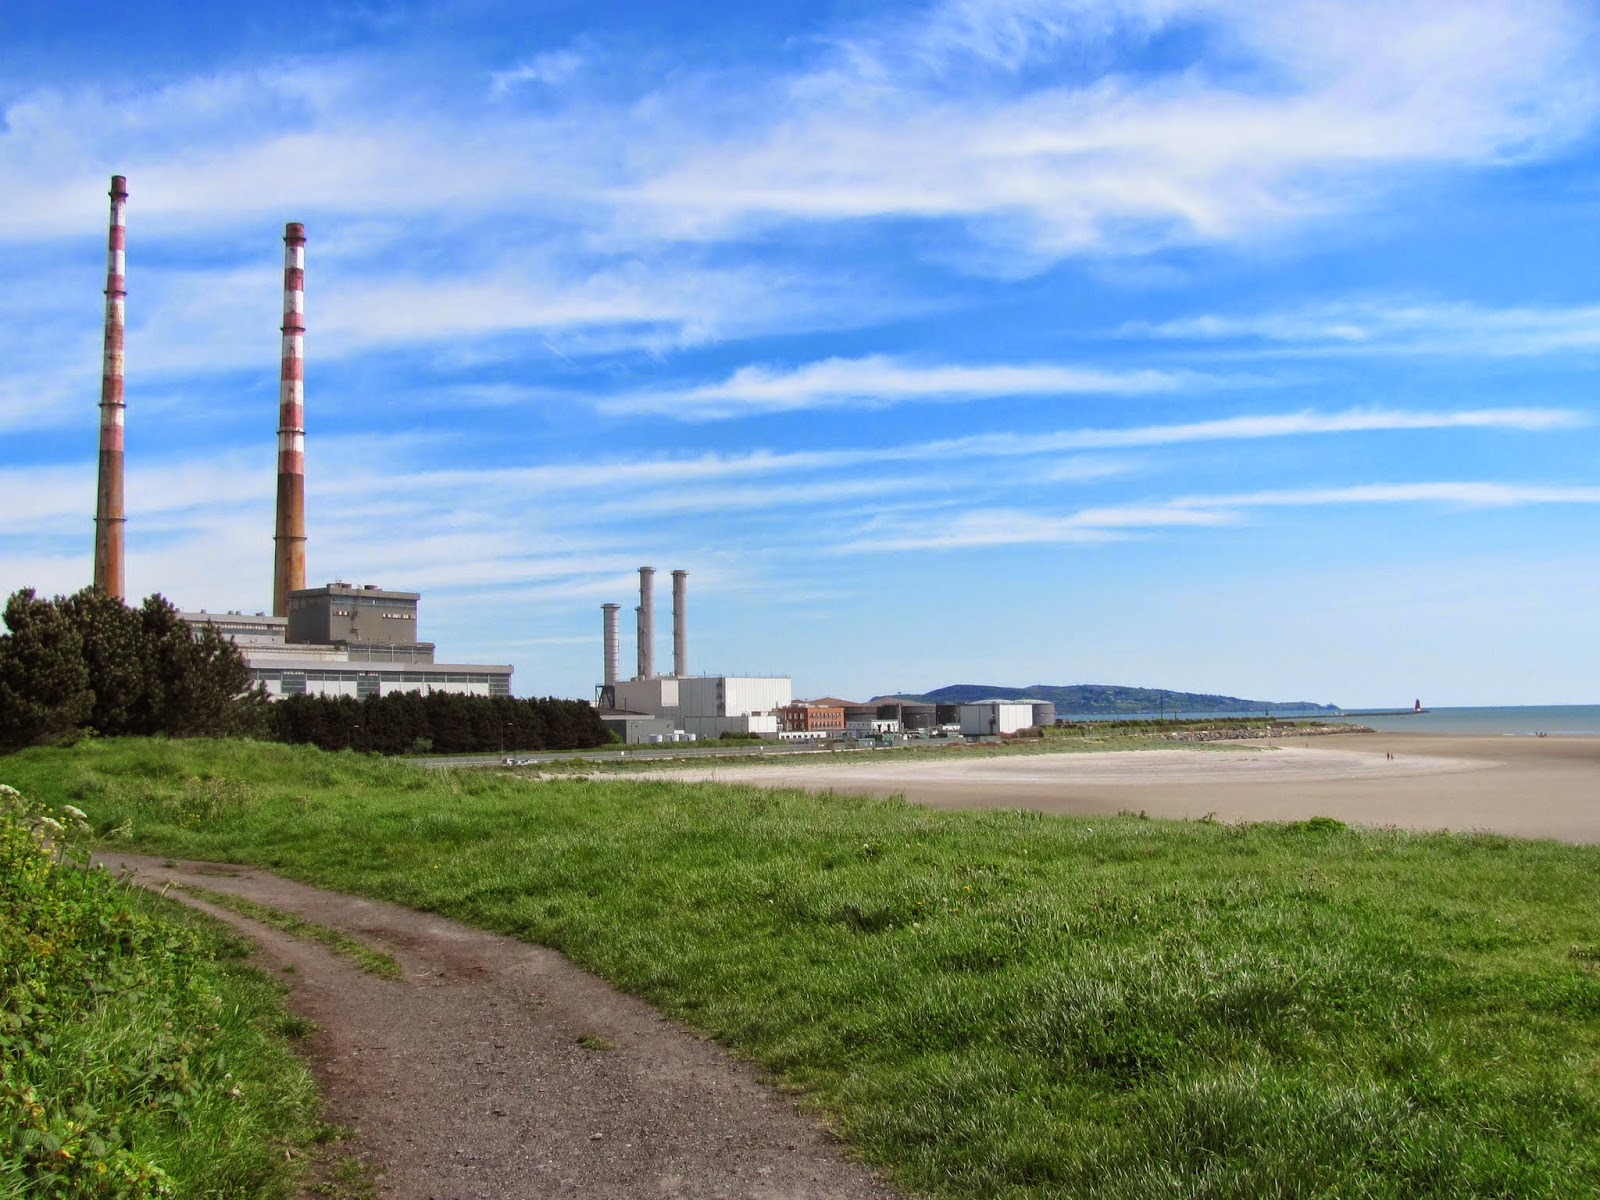 Poolbeg Power Station Smokestacks Dublin